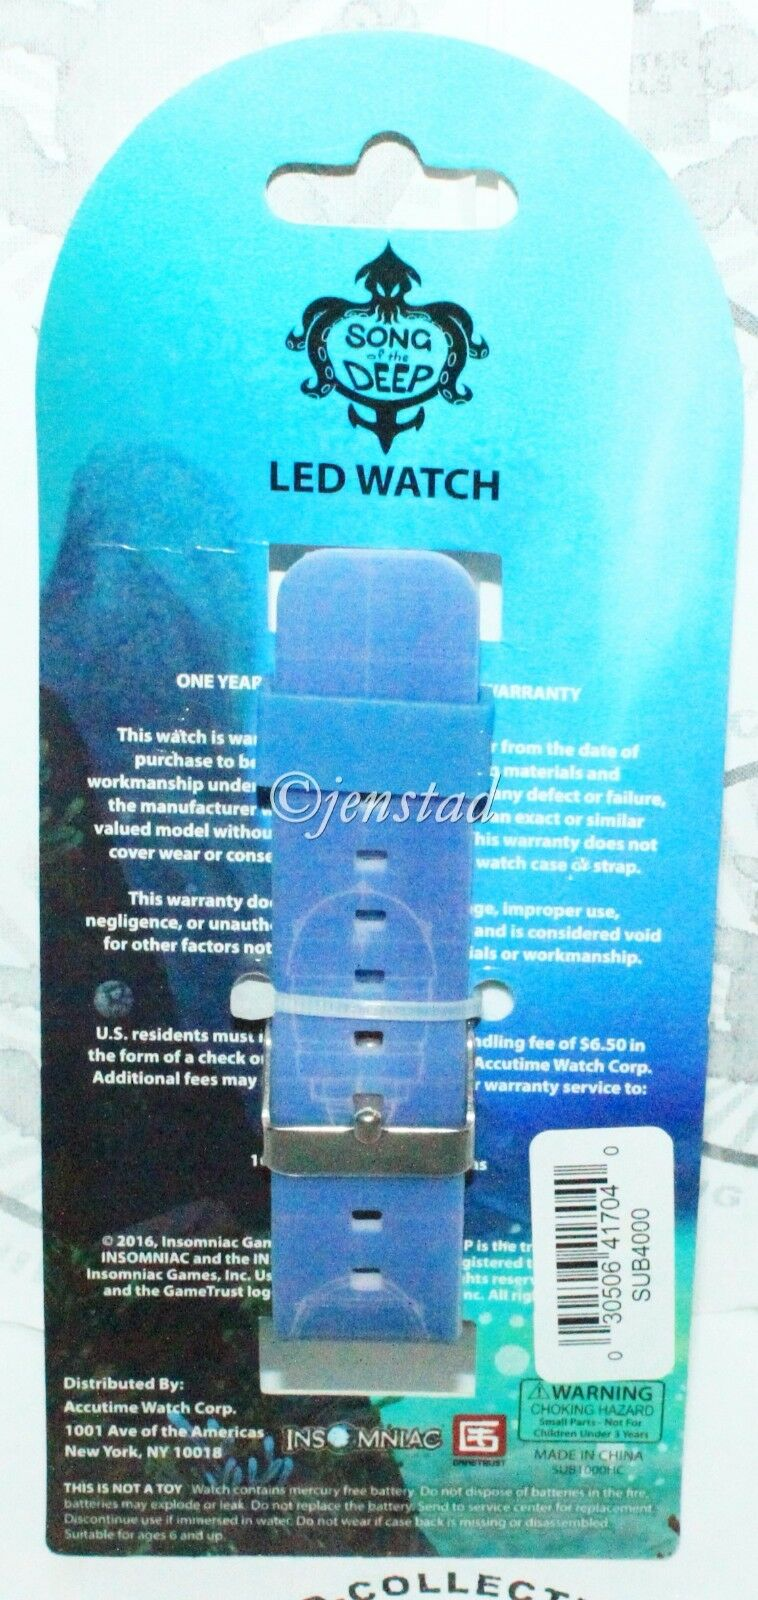 SONG OF THE DEEP BLUE LED VINYL WRIST WATCH VIDEO GAME MERCHANDISE APPAREL 2016